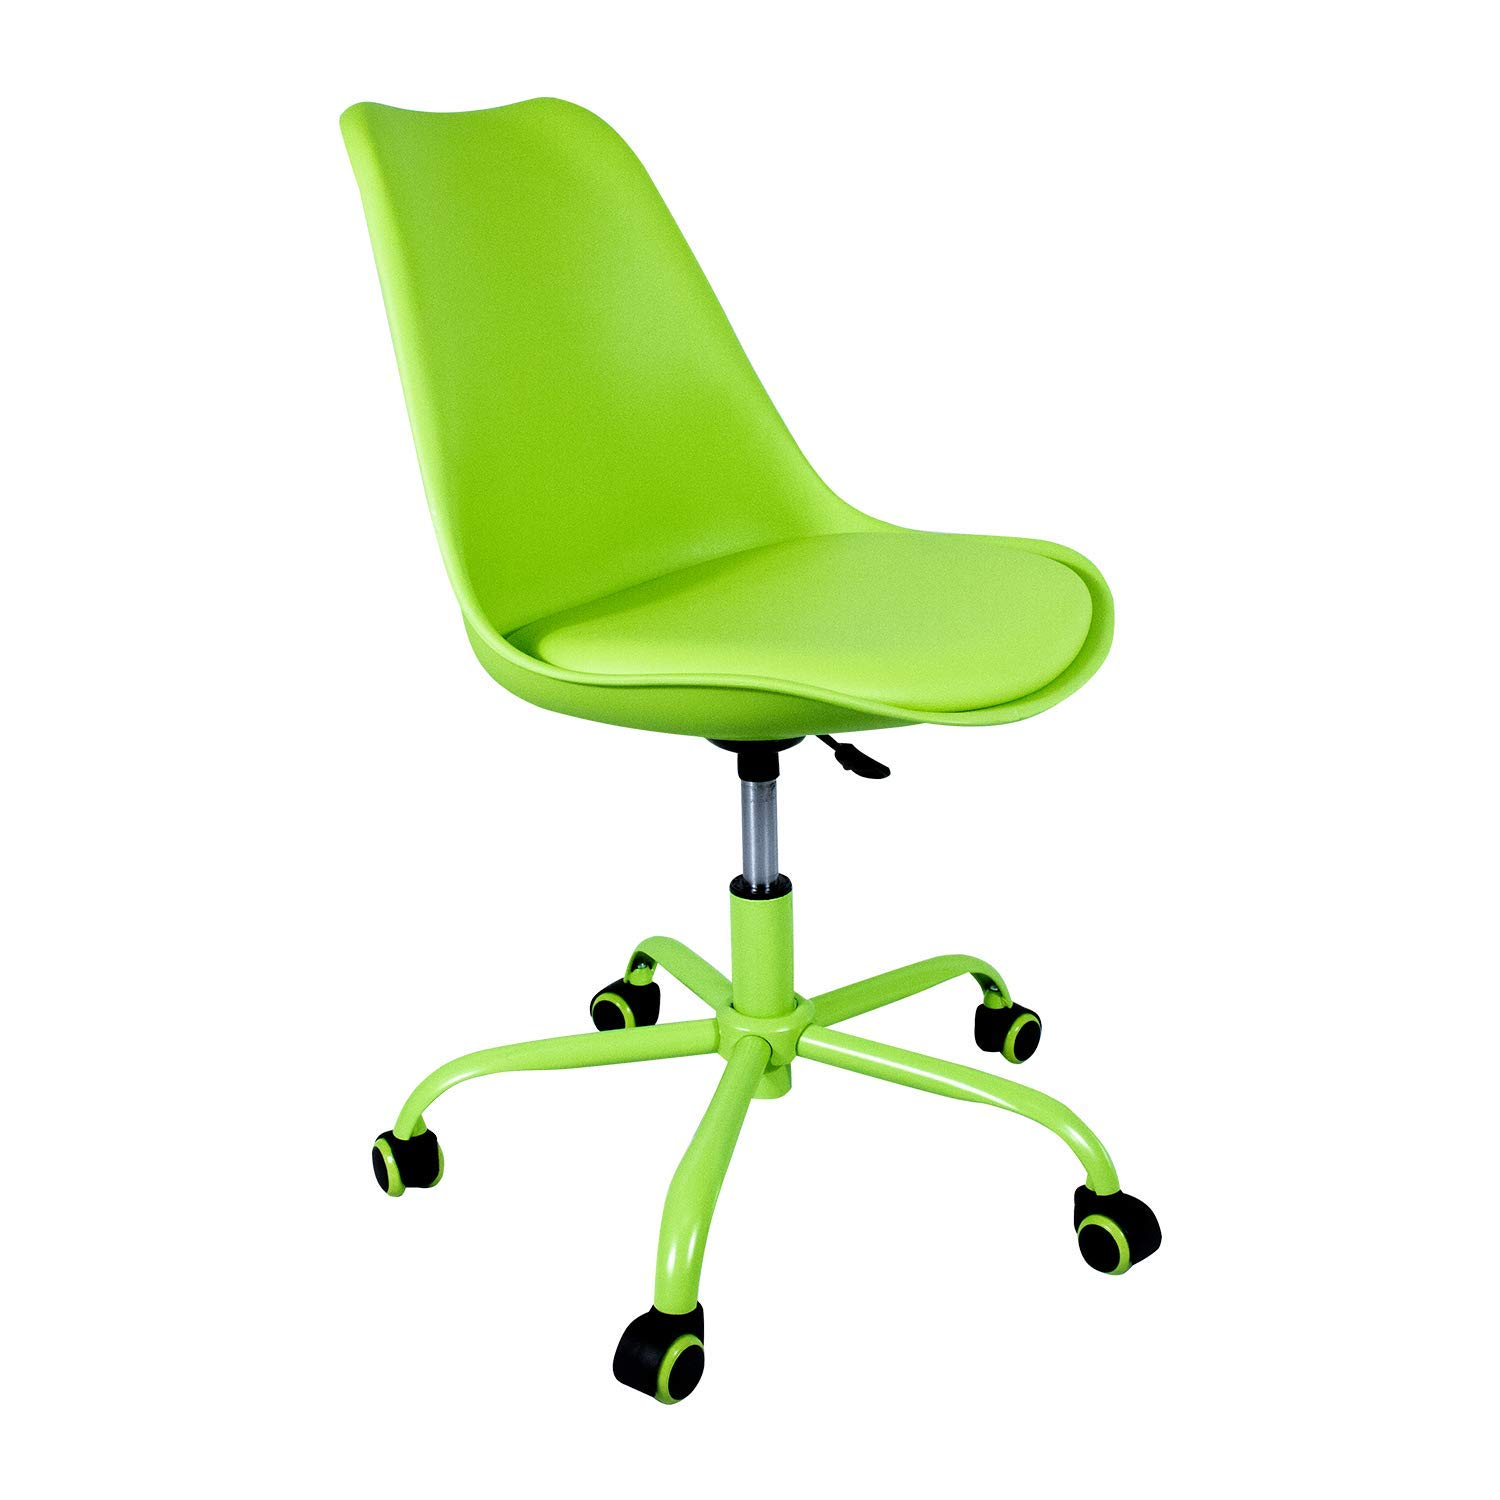 Strange Weinerbee Rolling Desk Chair With Wheels Height Adjustable Computer Chair For Kids Green Caraccident5 Cool Chair Designs And Ideas Caraccident5Info